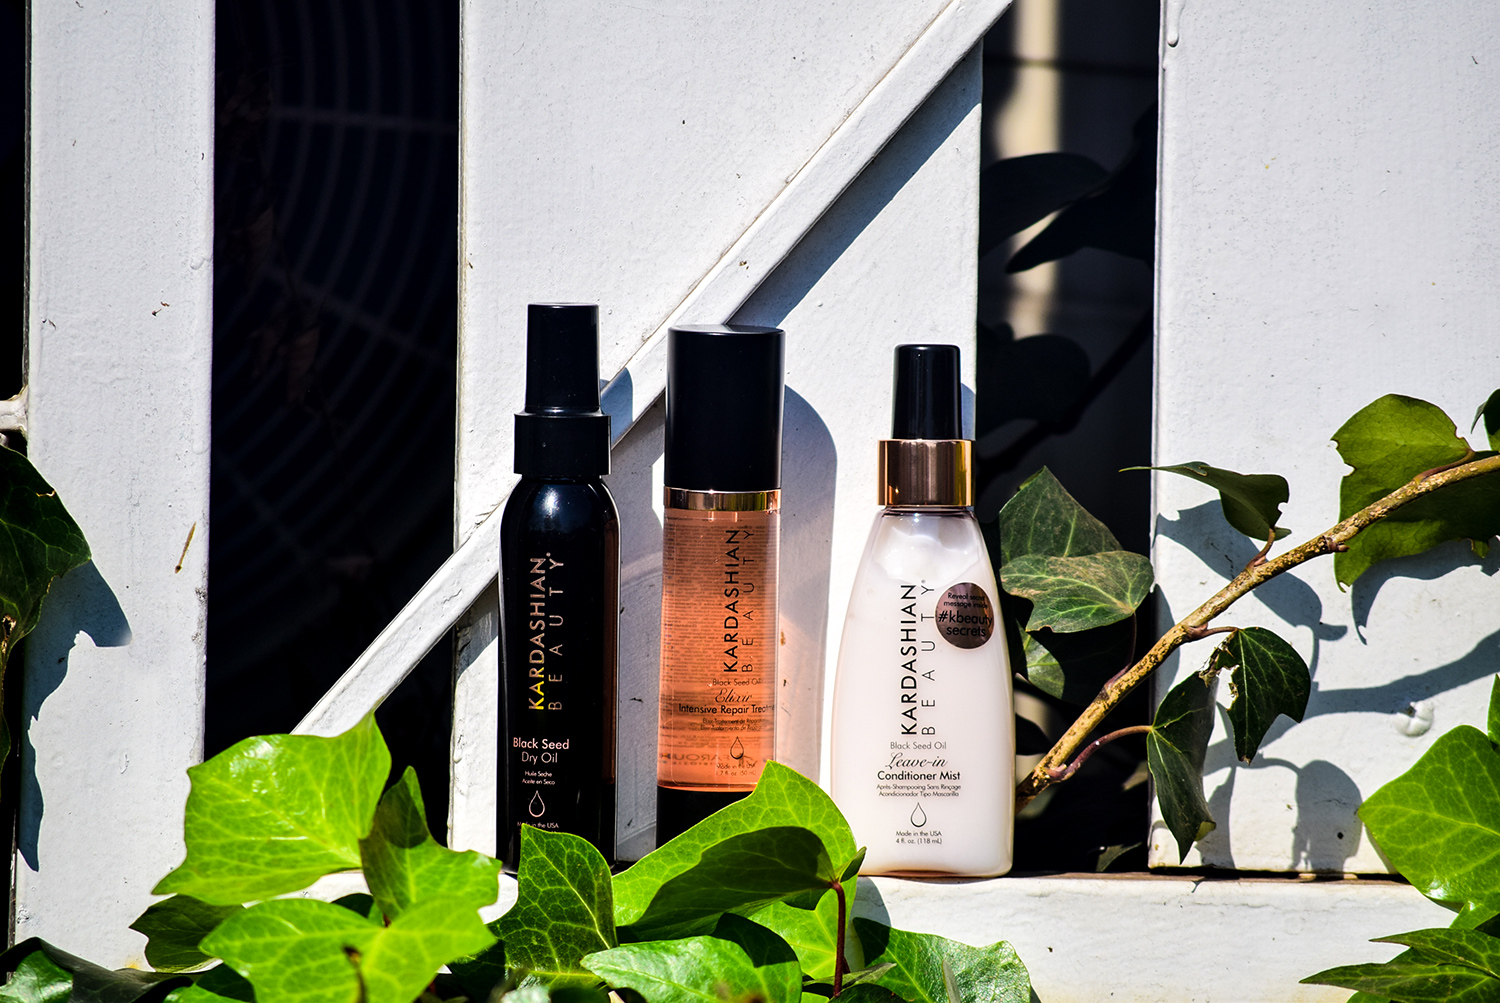 kardashian black seed oil, hair blogger, Africa